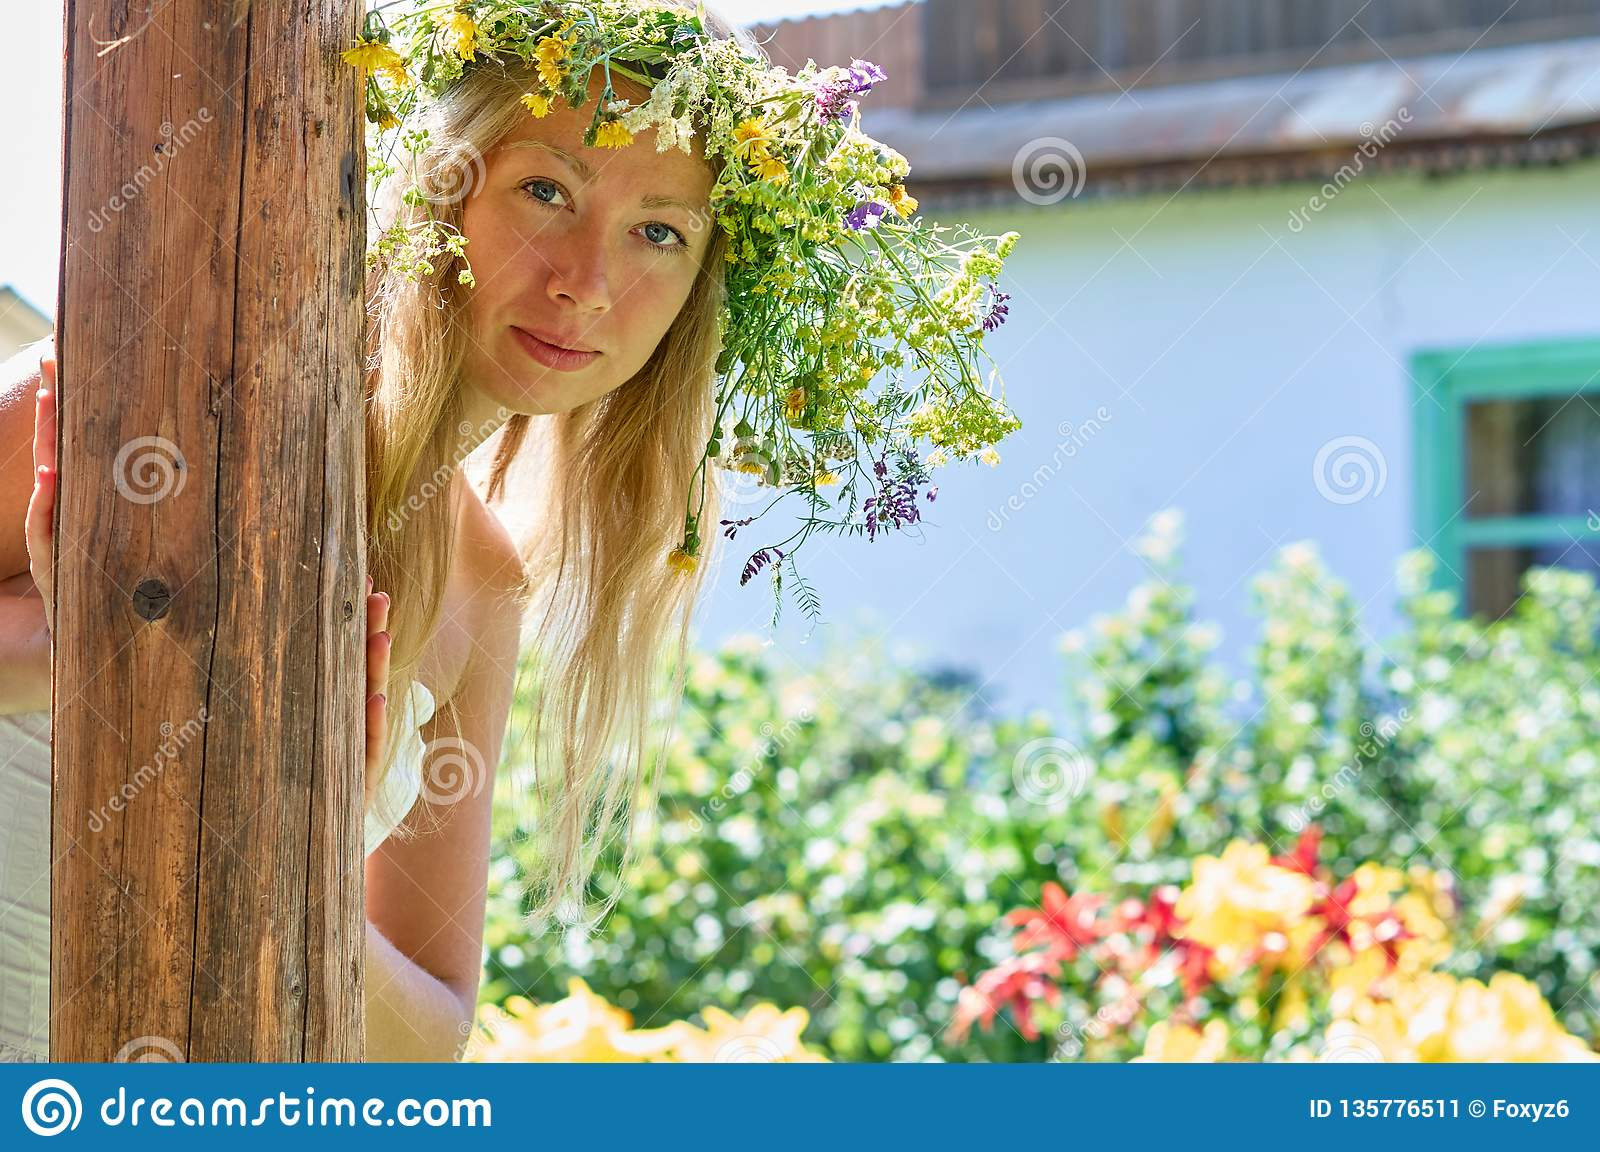 Beautiful long-white hair woman in white dress and flower wreath peeking playfully from behind a wooden pillar on yard of your